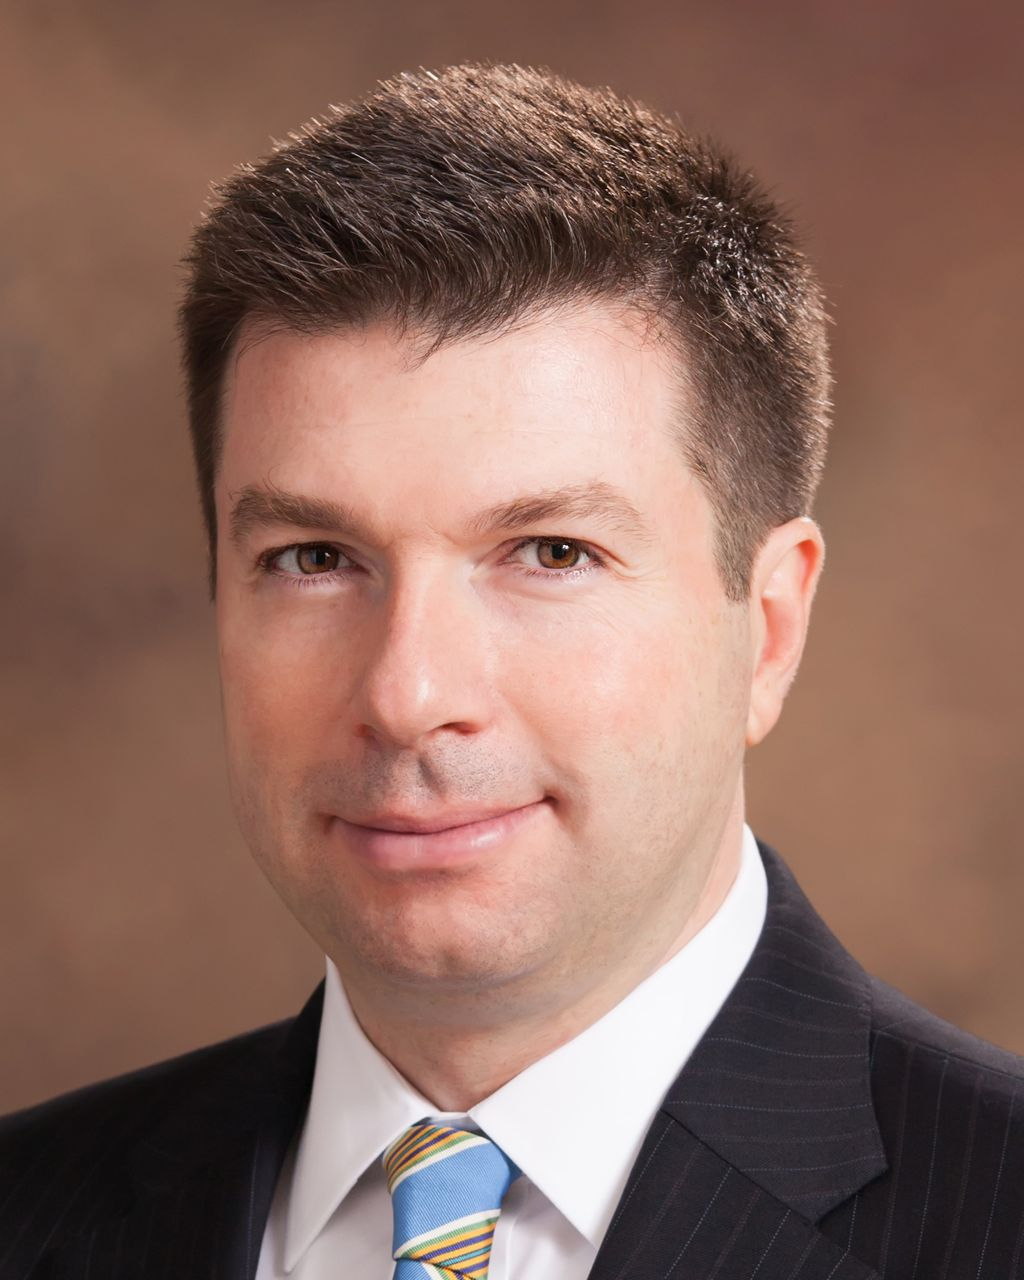 Patrick Cote, financial advisor Chestnut Hill MA